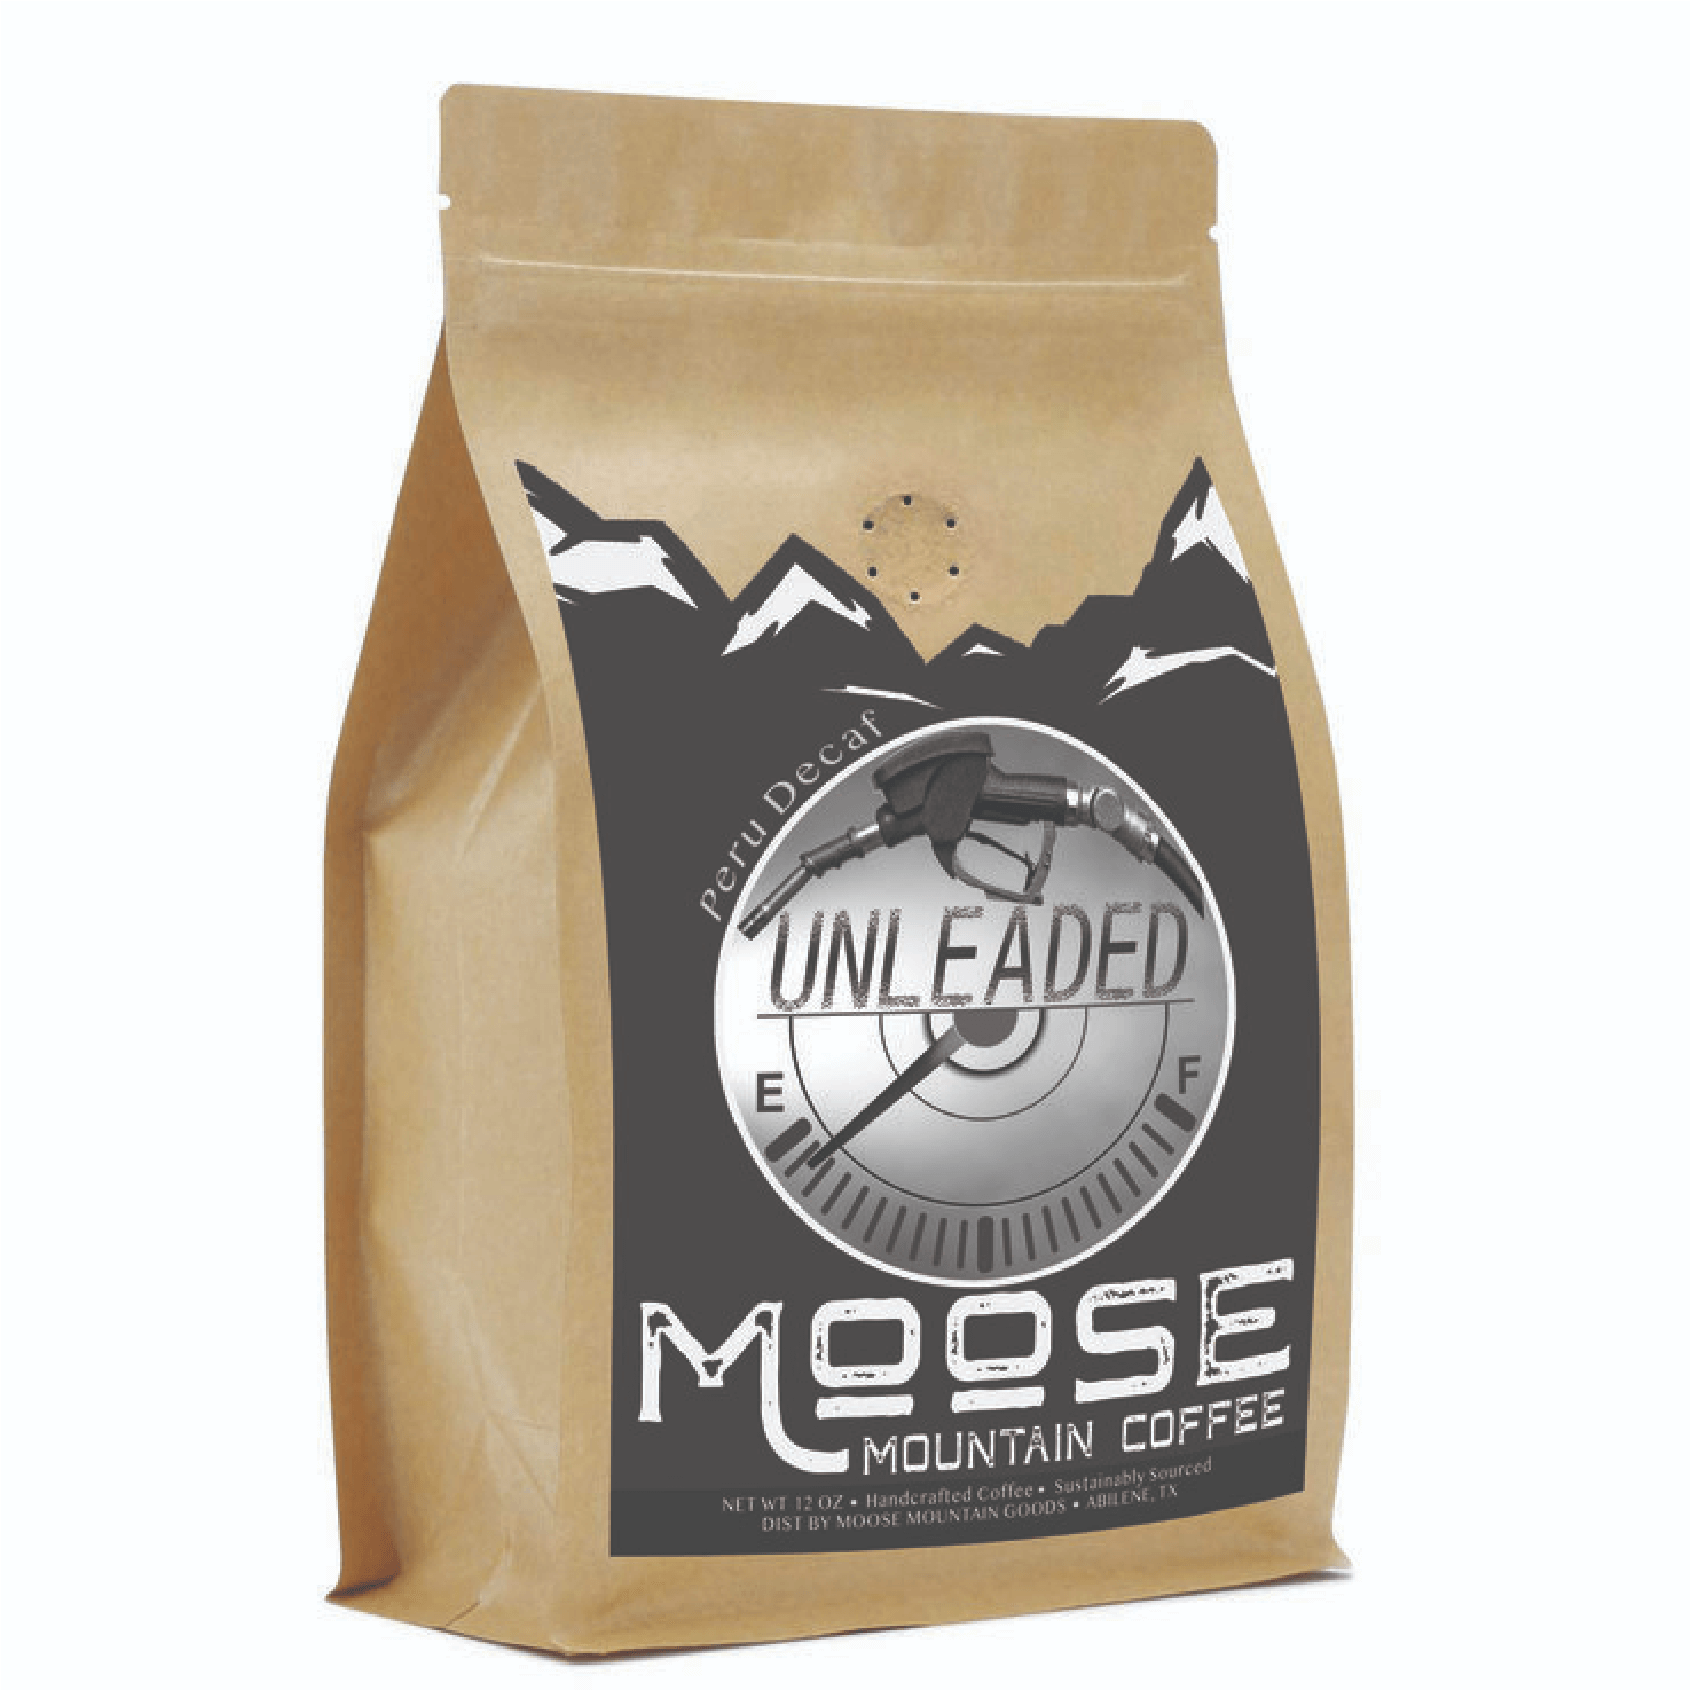 Unleaded - Decaf from Moose Mountain Goods